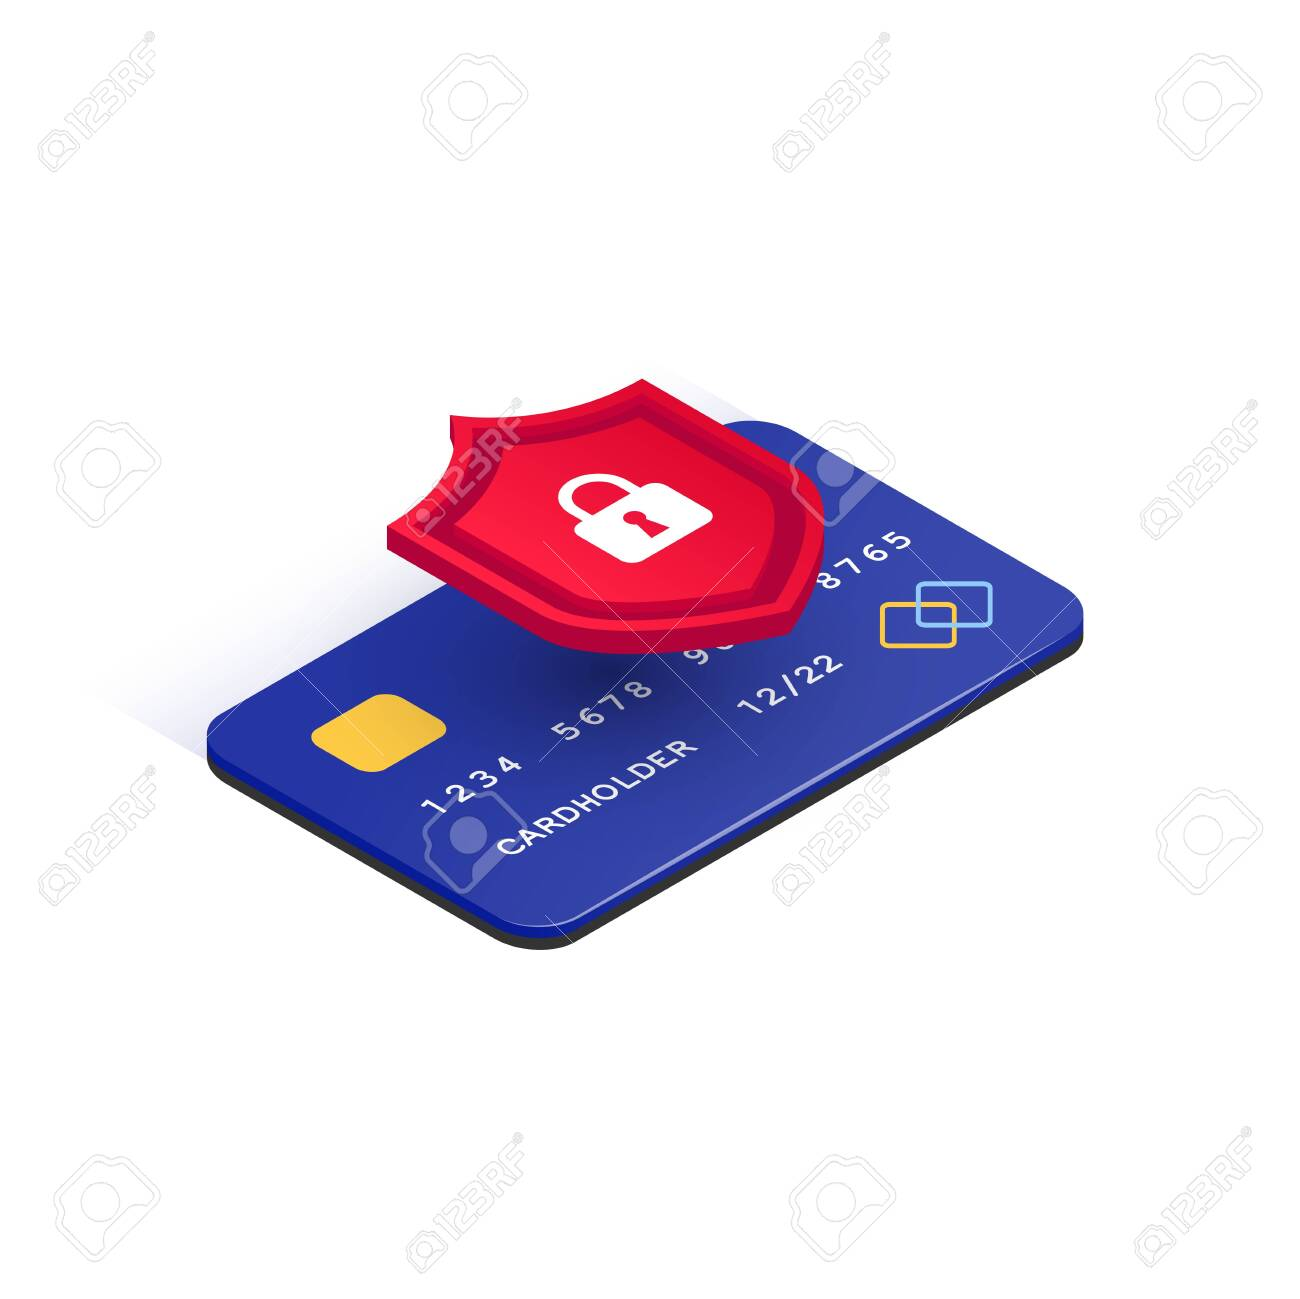 E-payment protection concept. Credit card online security isometric icon. Secure transaction. 3d plastic card and shield with lock isolated on white background. Internet safety. Vector illustration - 148141989